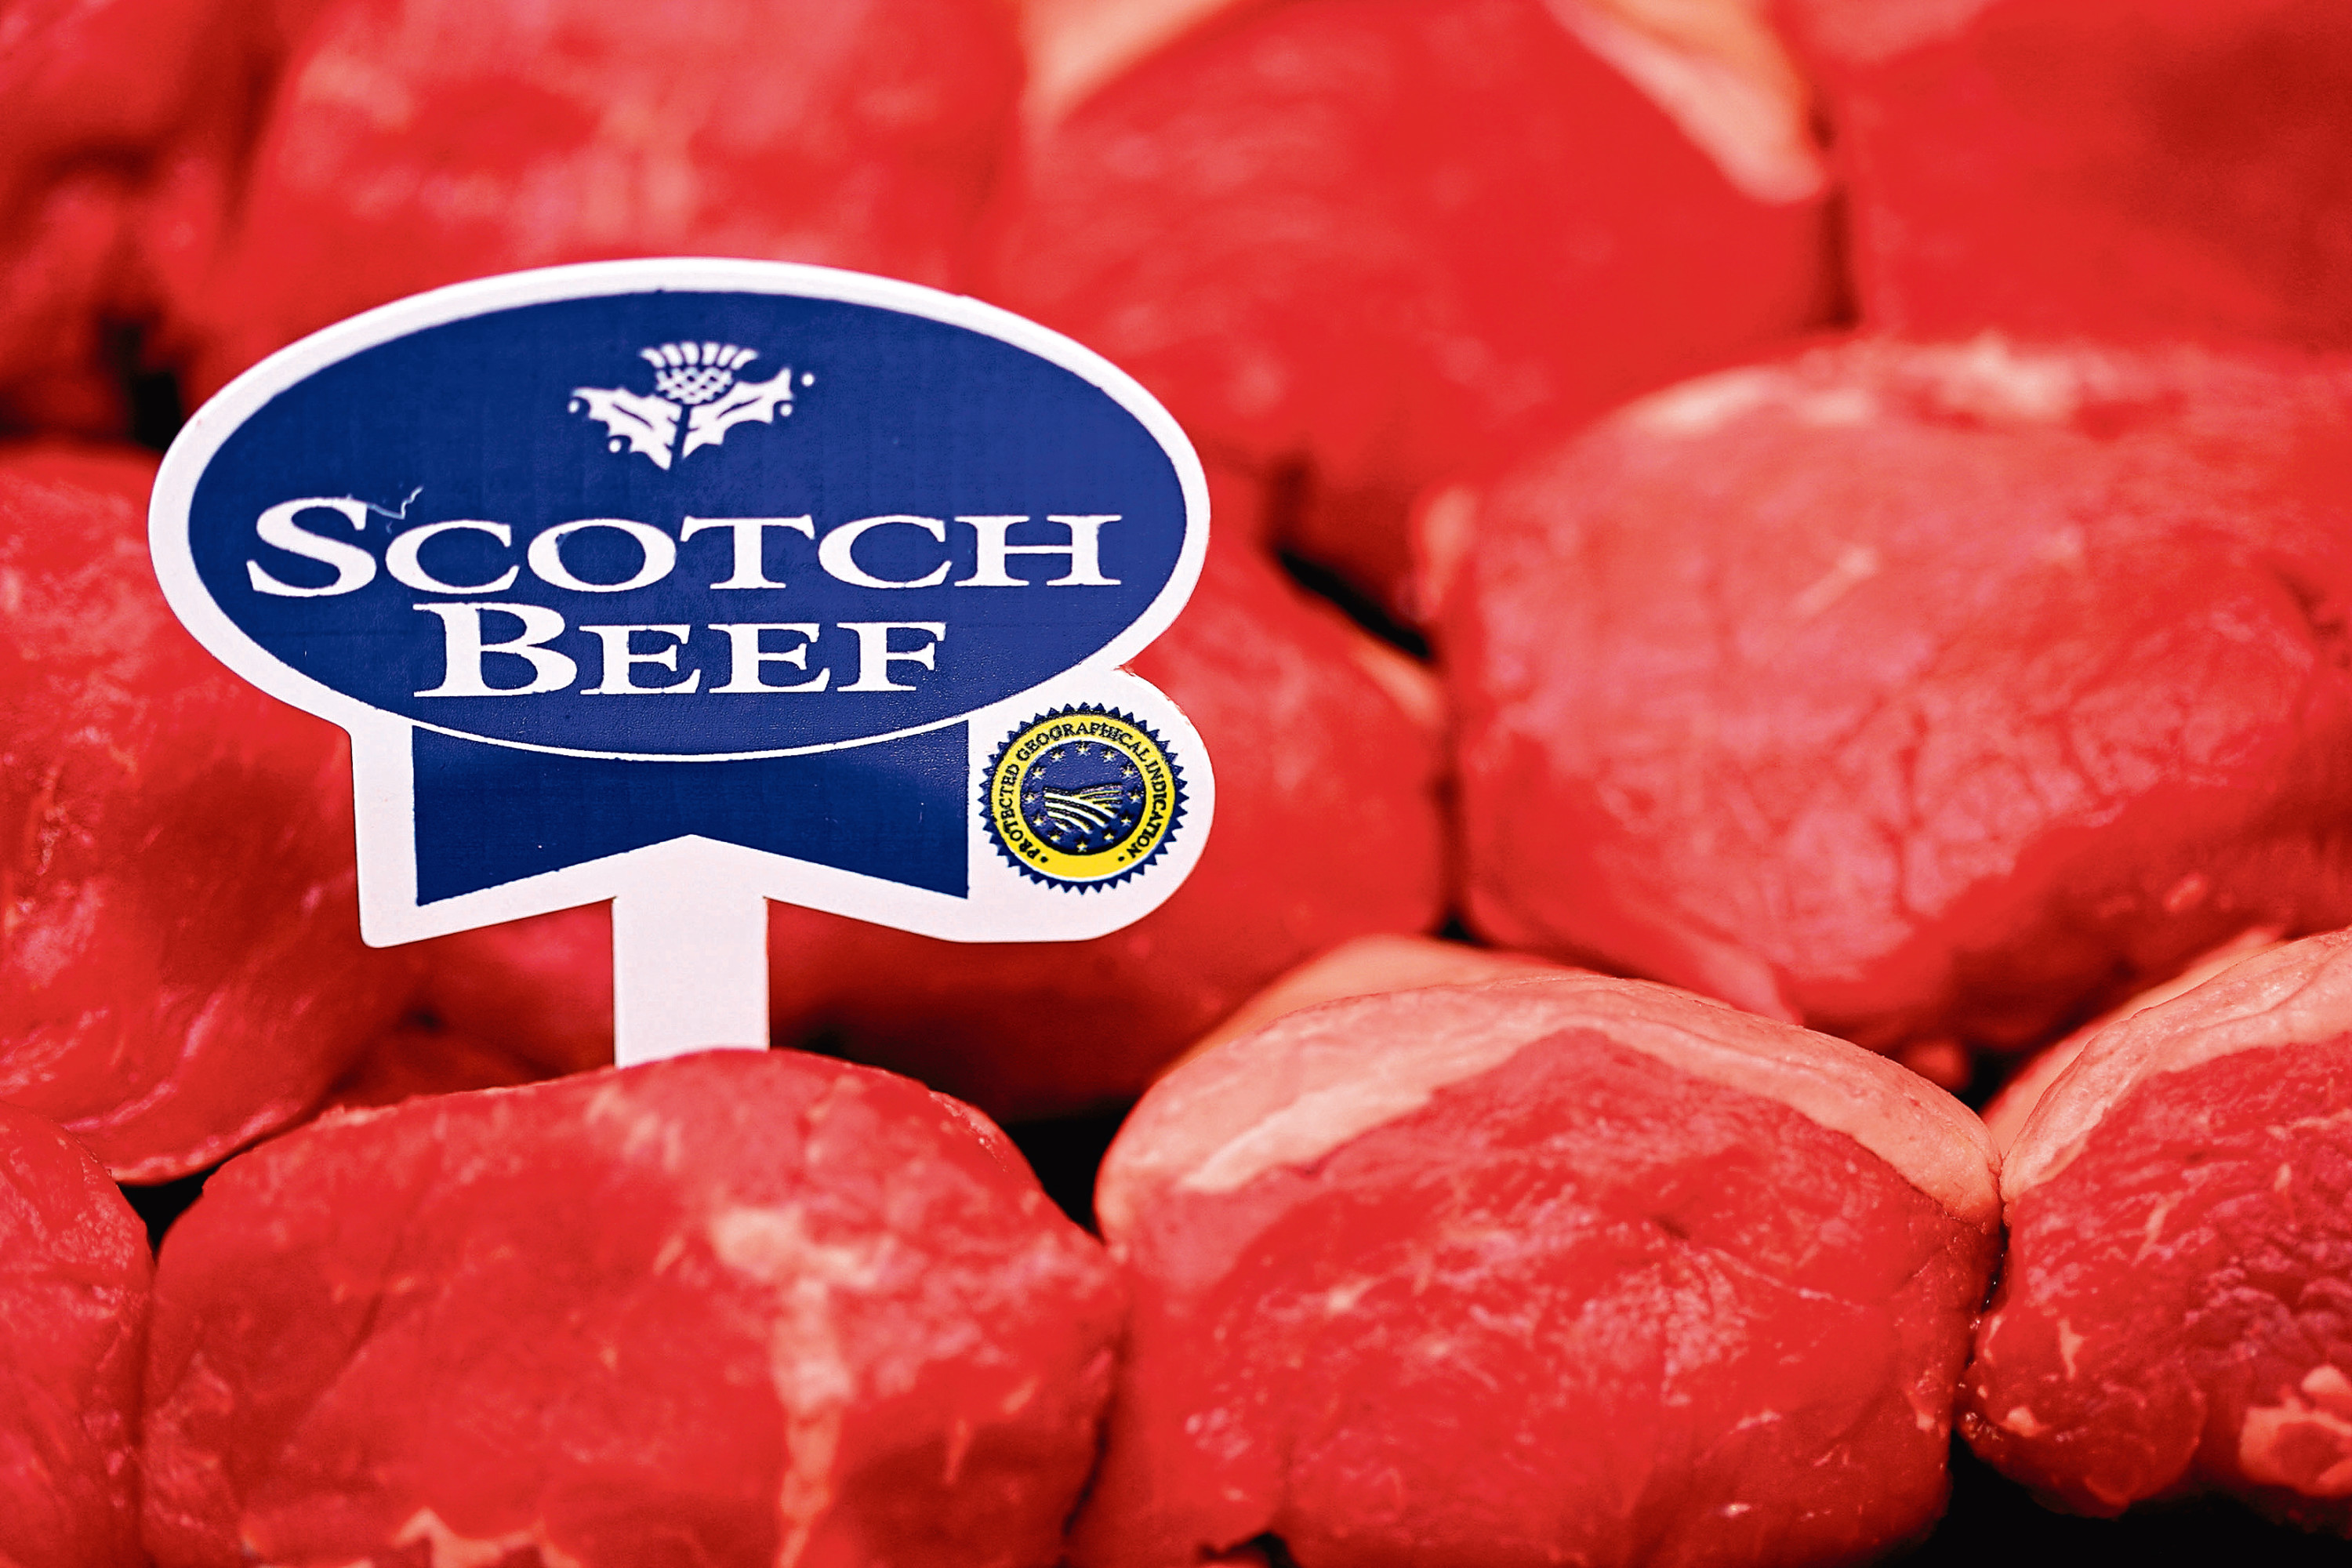 Scotch Beef will be showcased in Canada.